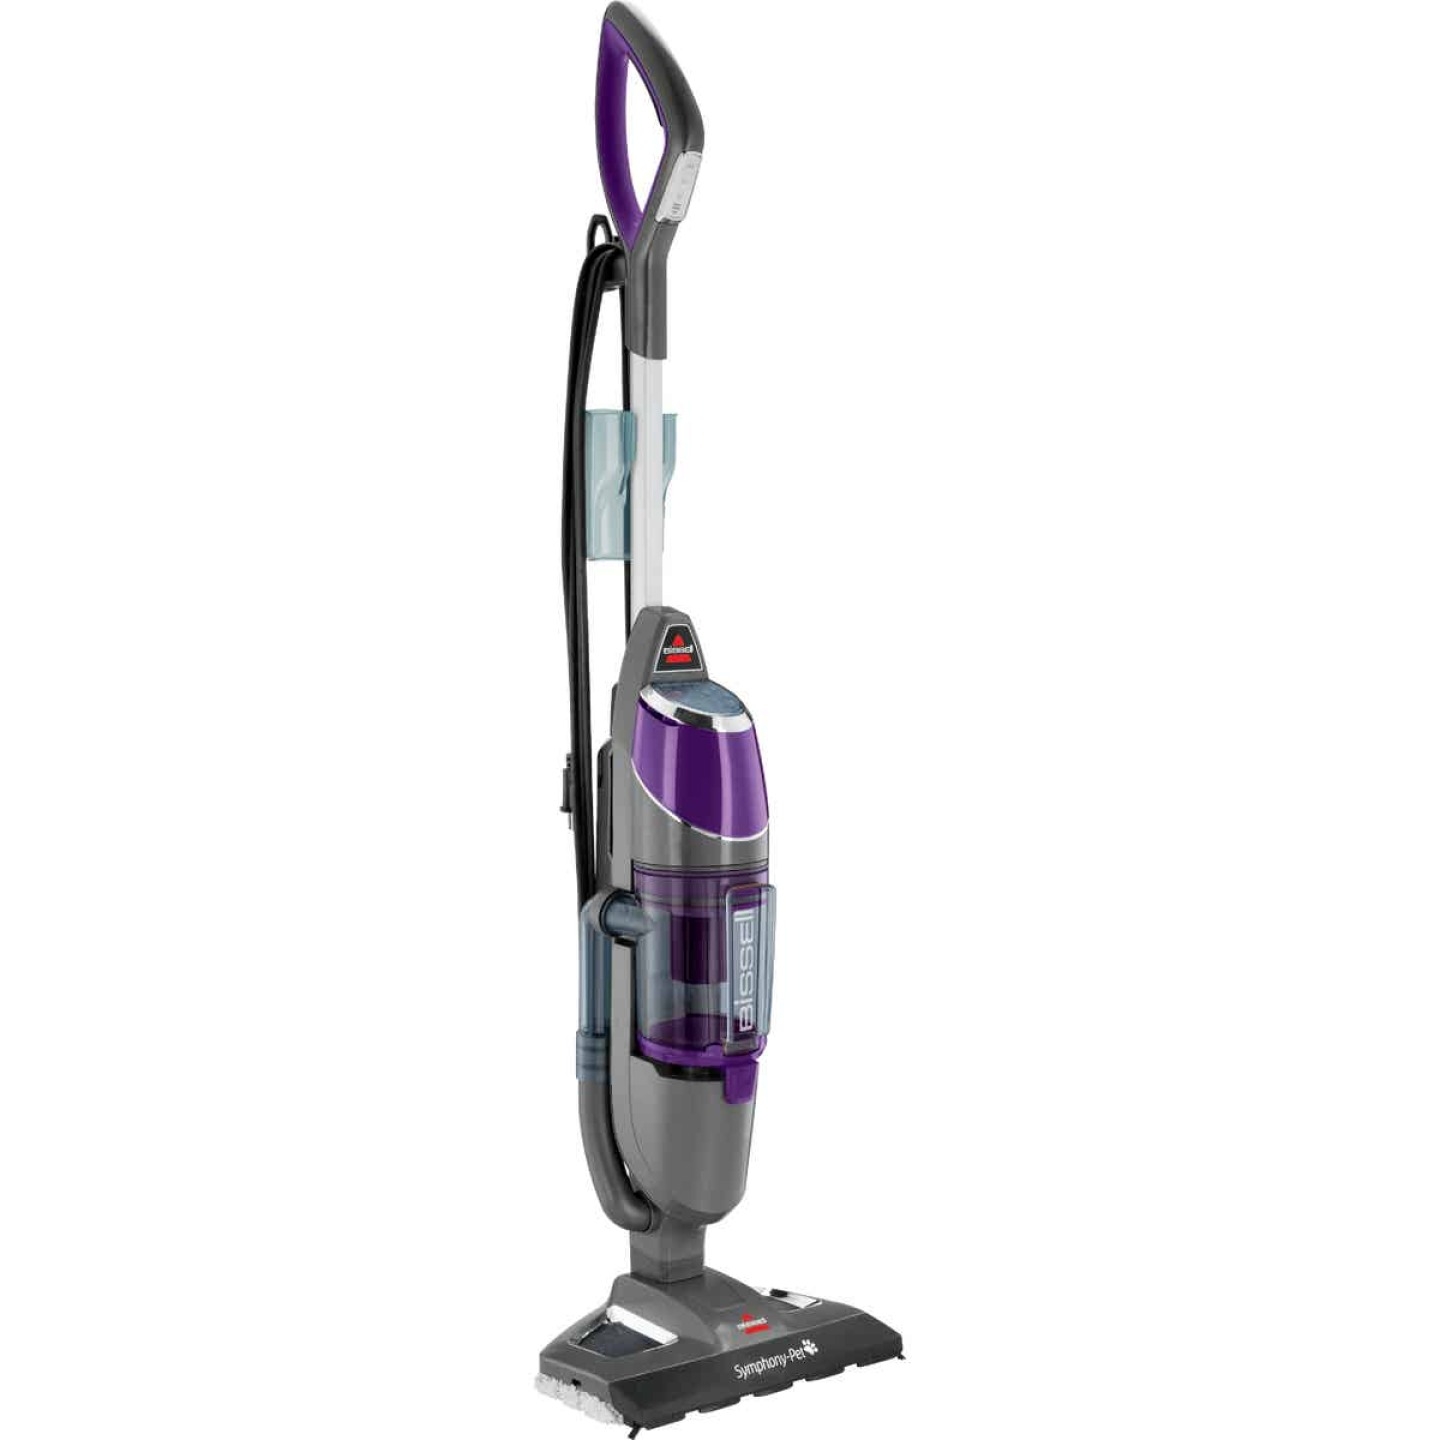 Bissell Symphony Wet/Dry Pet Vacuum & Steam Mop Image 1